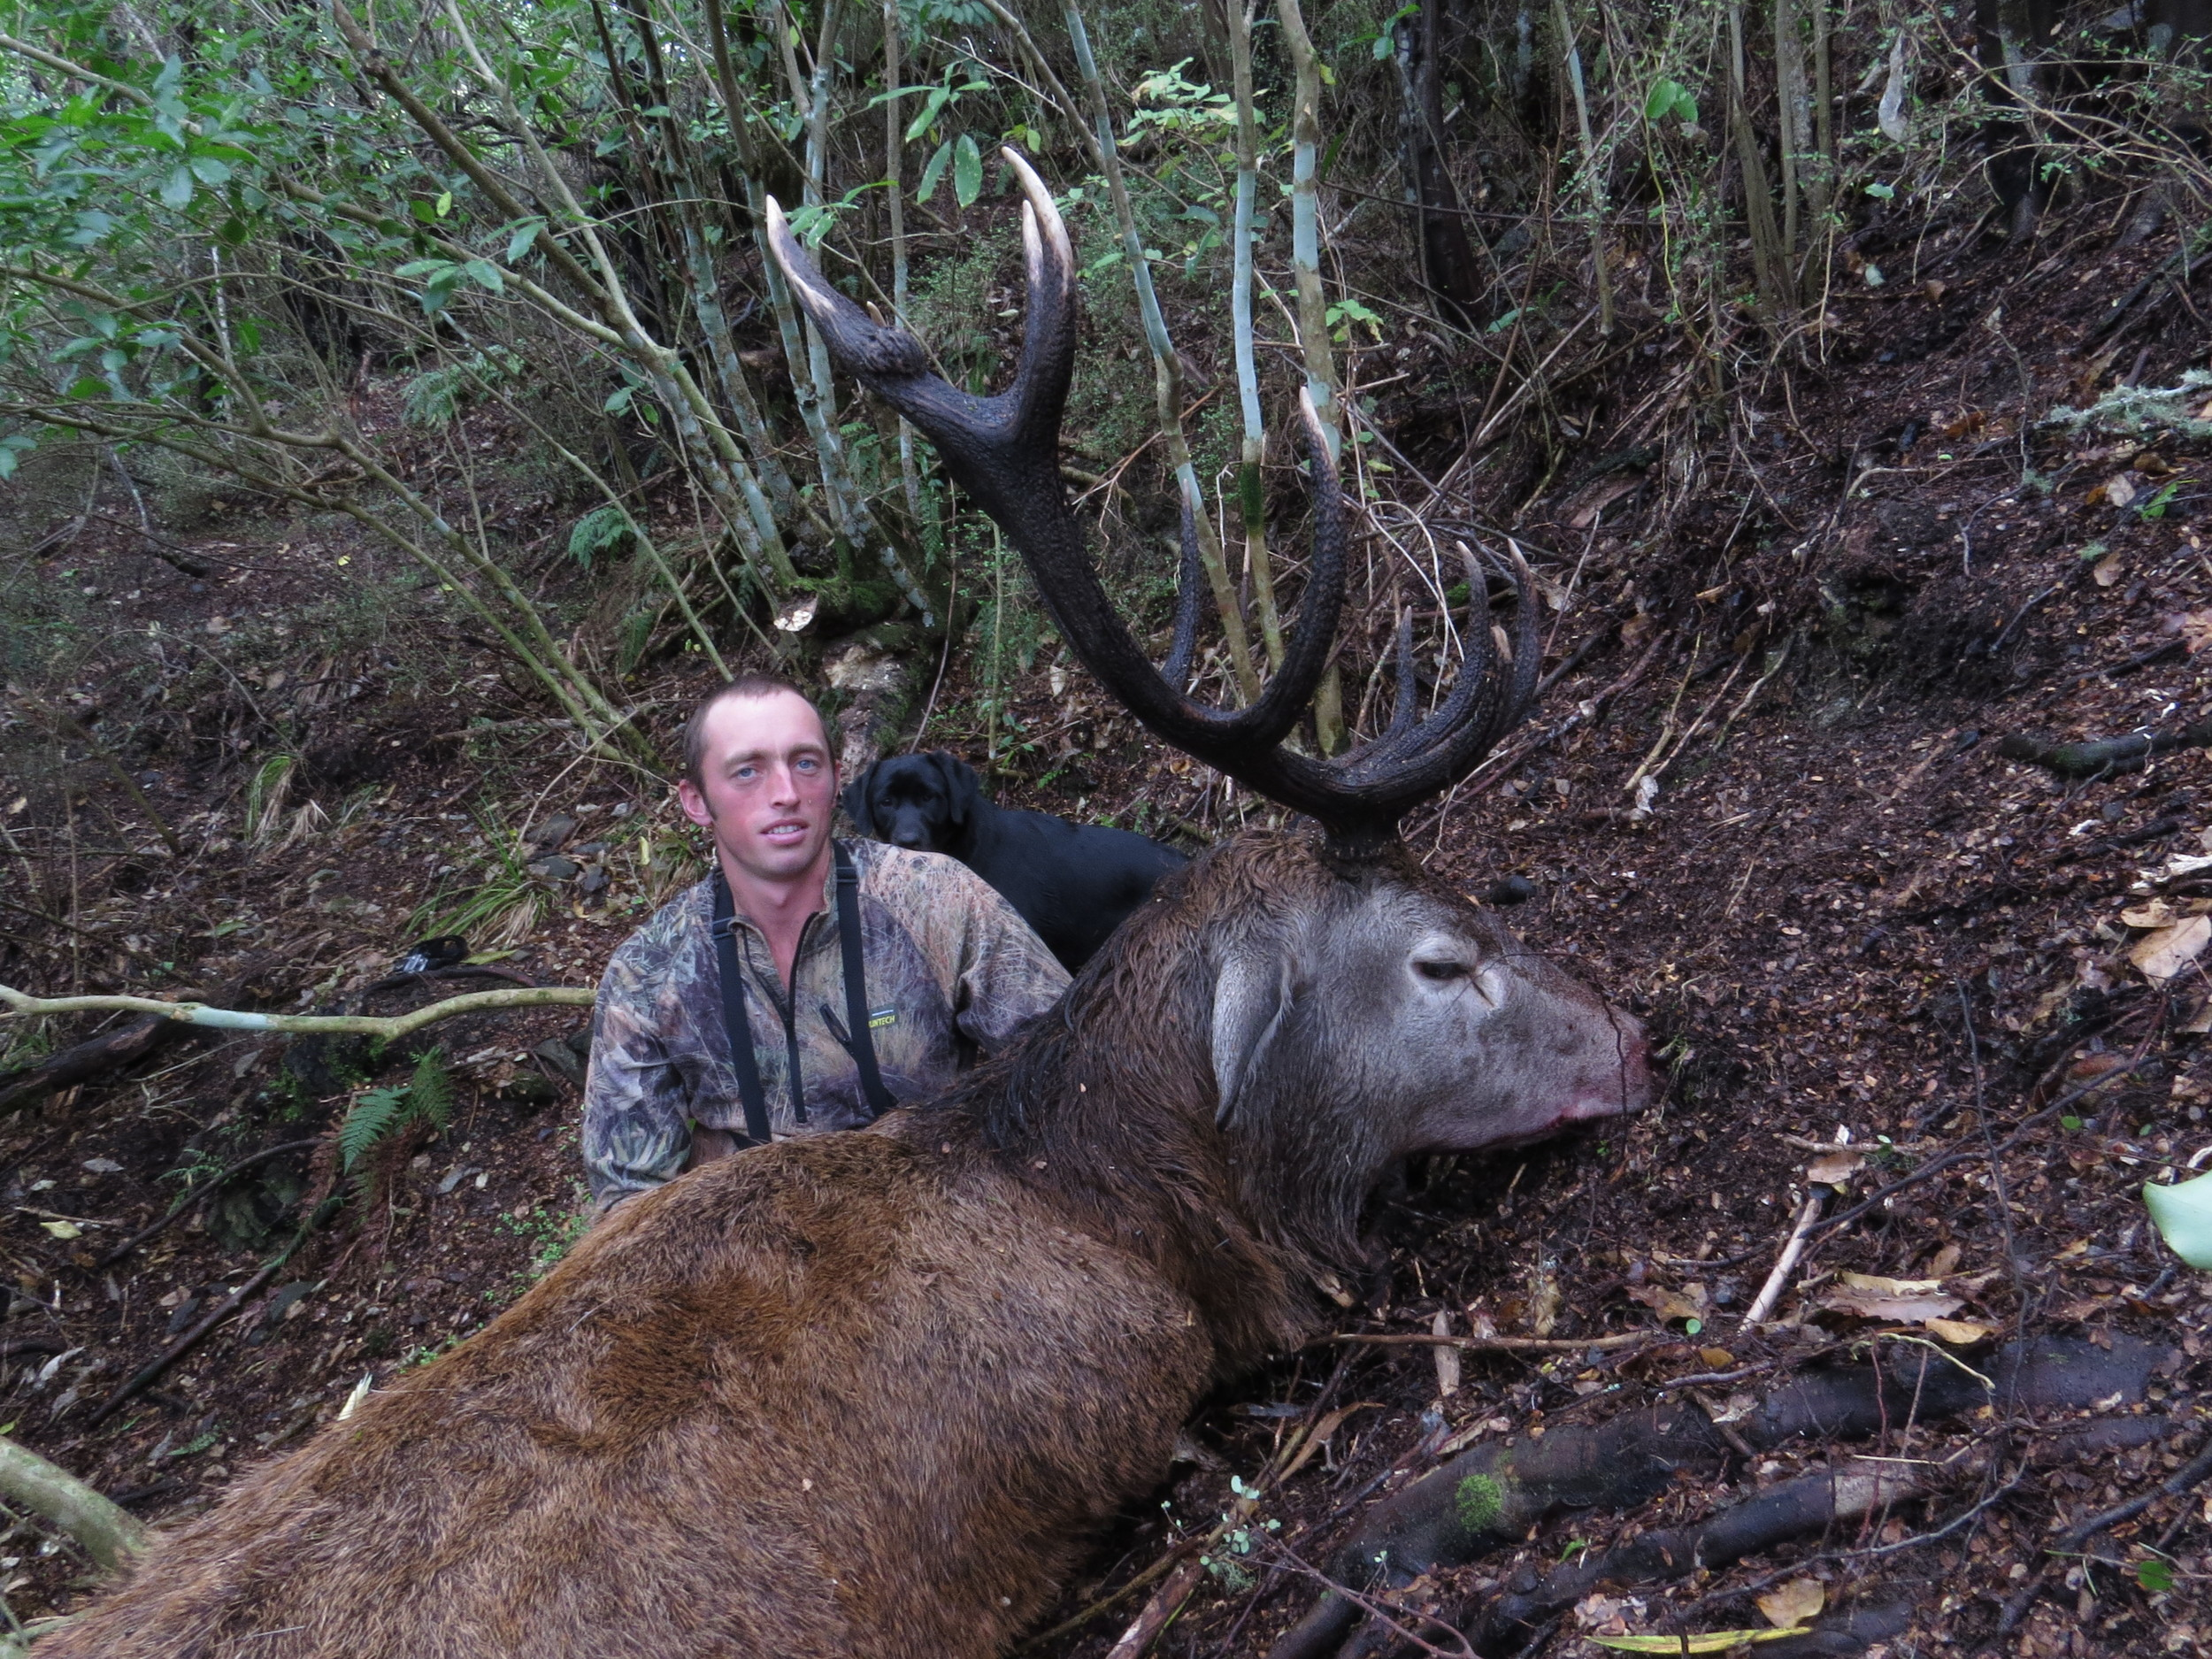 Ryan Carr with his big red stag that he shot down through a small gap in the trees - photo by Johnny Wigley